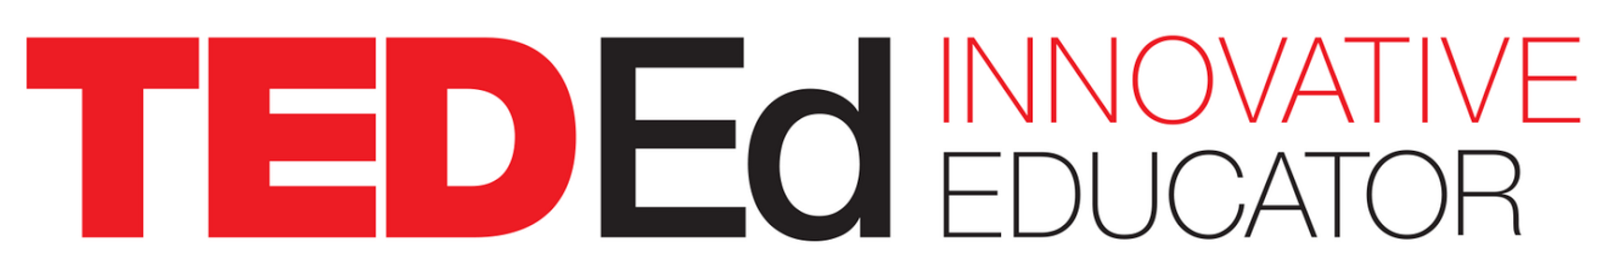 TED Ed Innovative Educator 2016